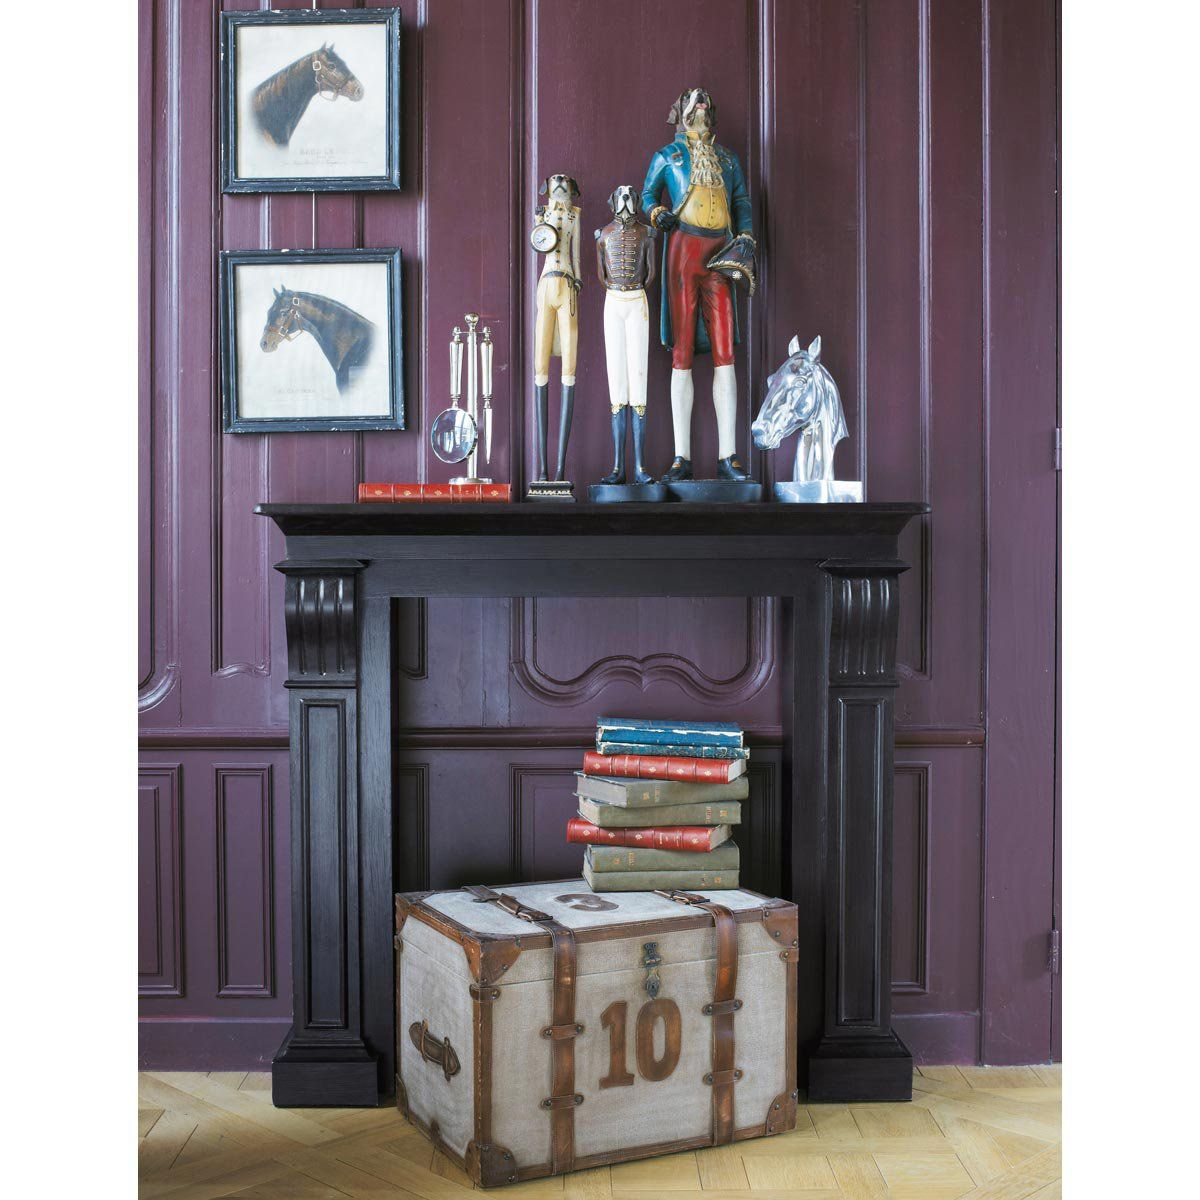 malle darlington maisons du monde tradition pinterest malle maison du monde et cadres. Black Bedroom Furniture Sets. Home Design Ideas